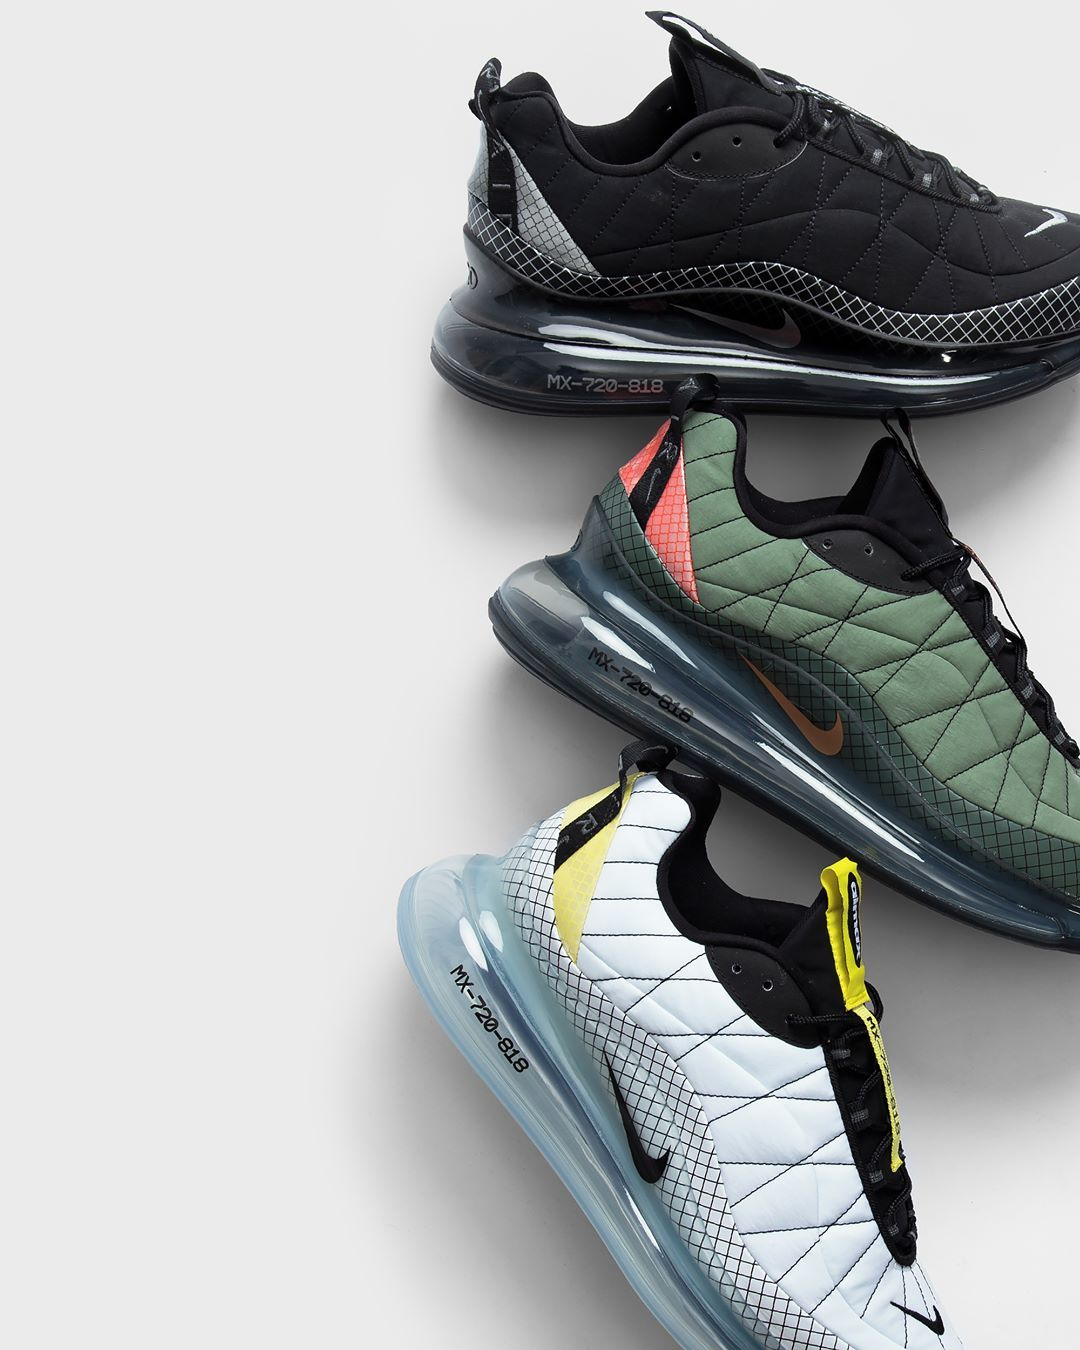 Bstn Store On Instagram The Nike Air Max Mx 720 818 Pack Drops